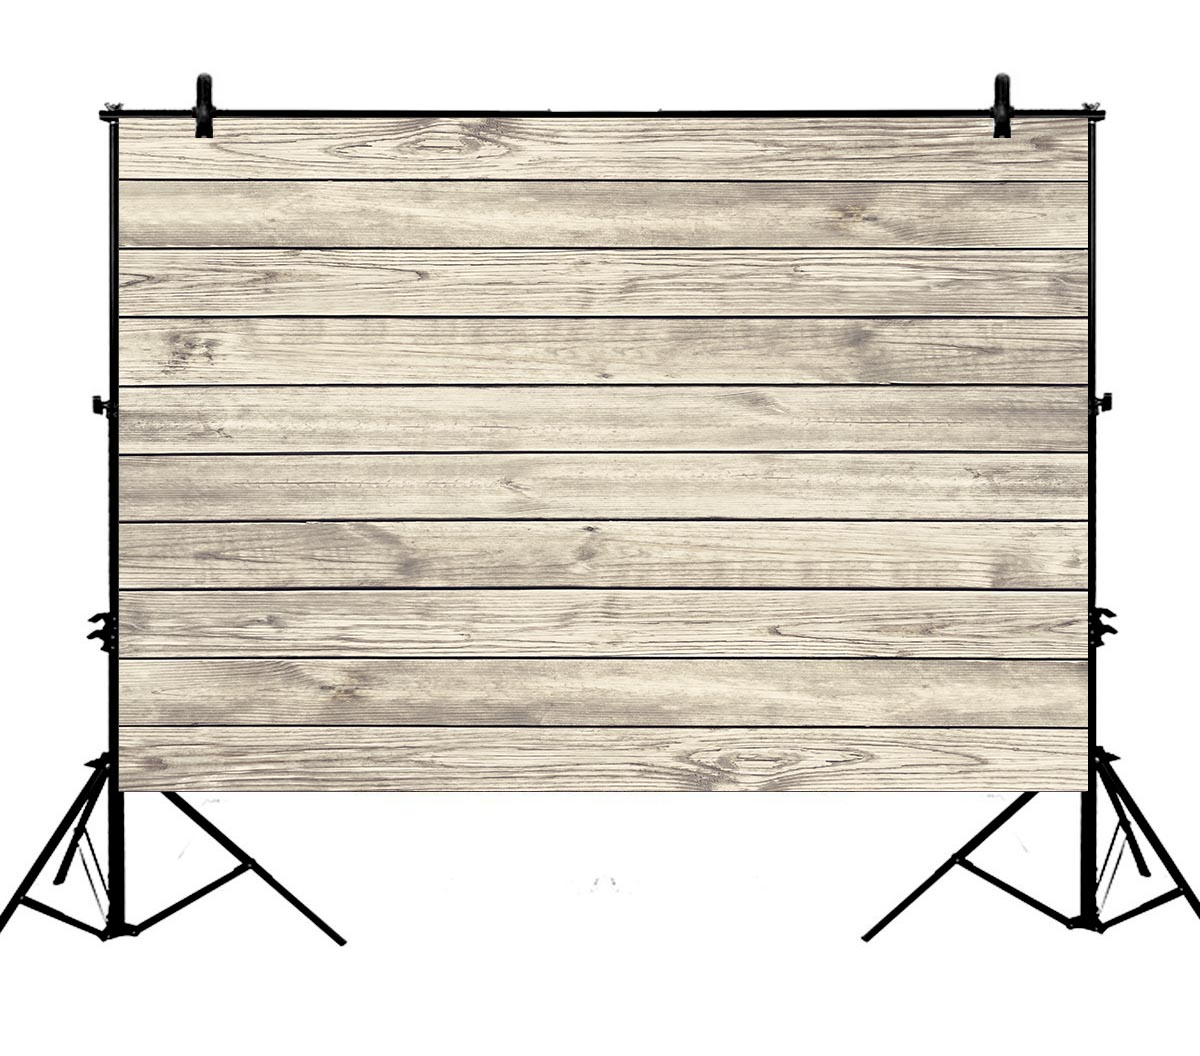 5x7ft Wood Plank Wall Polyester Photo Background Portrait Backdrop